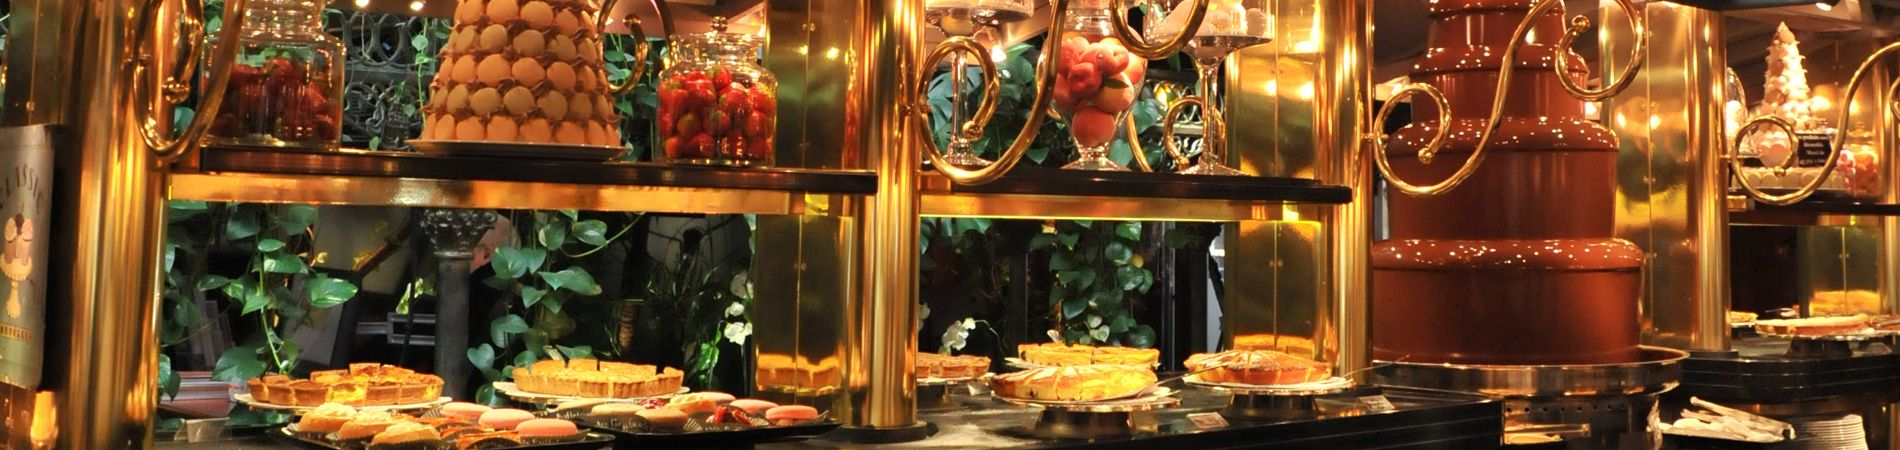 La fontaine au chocolat des Grands buffets